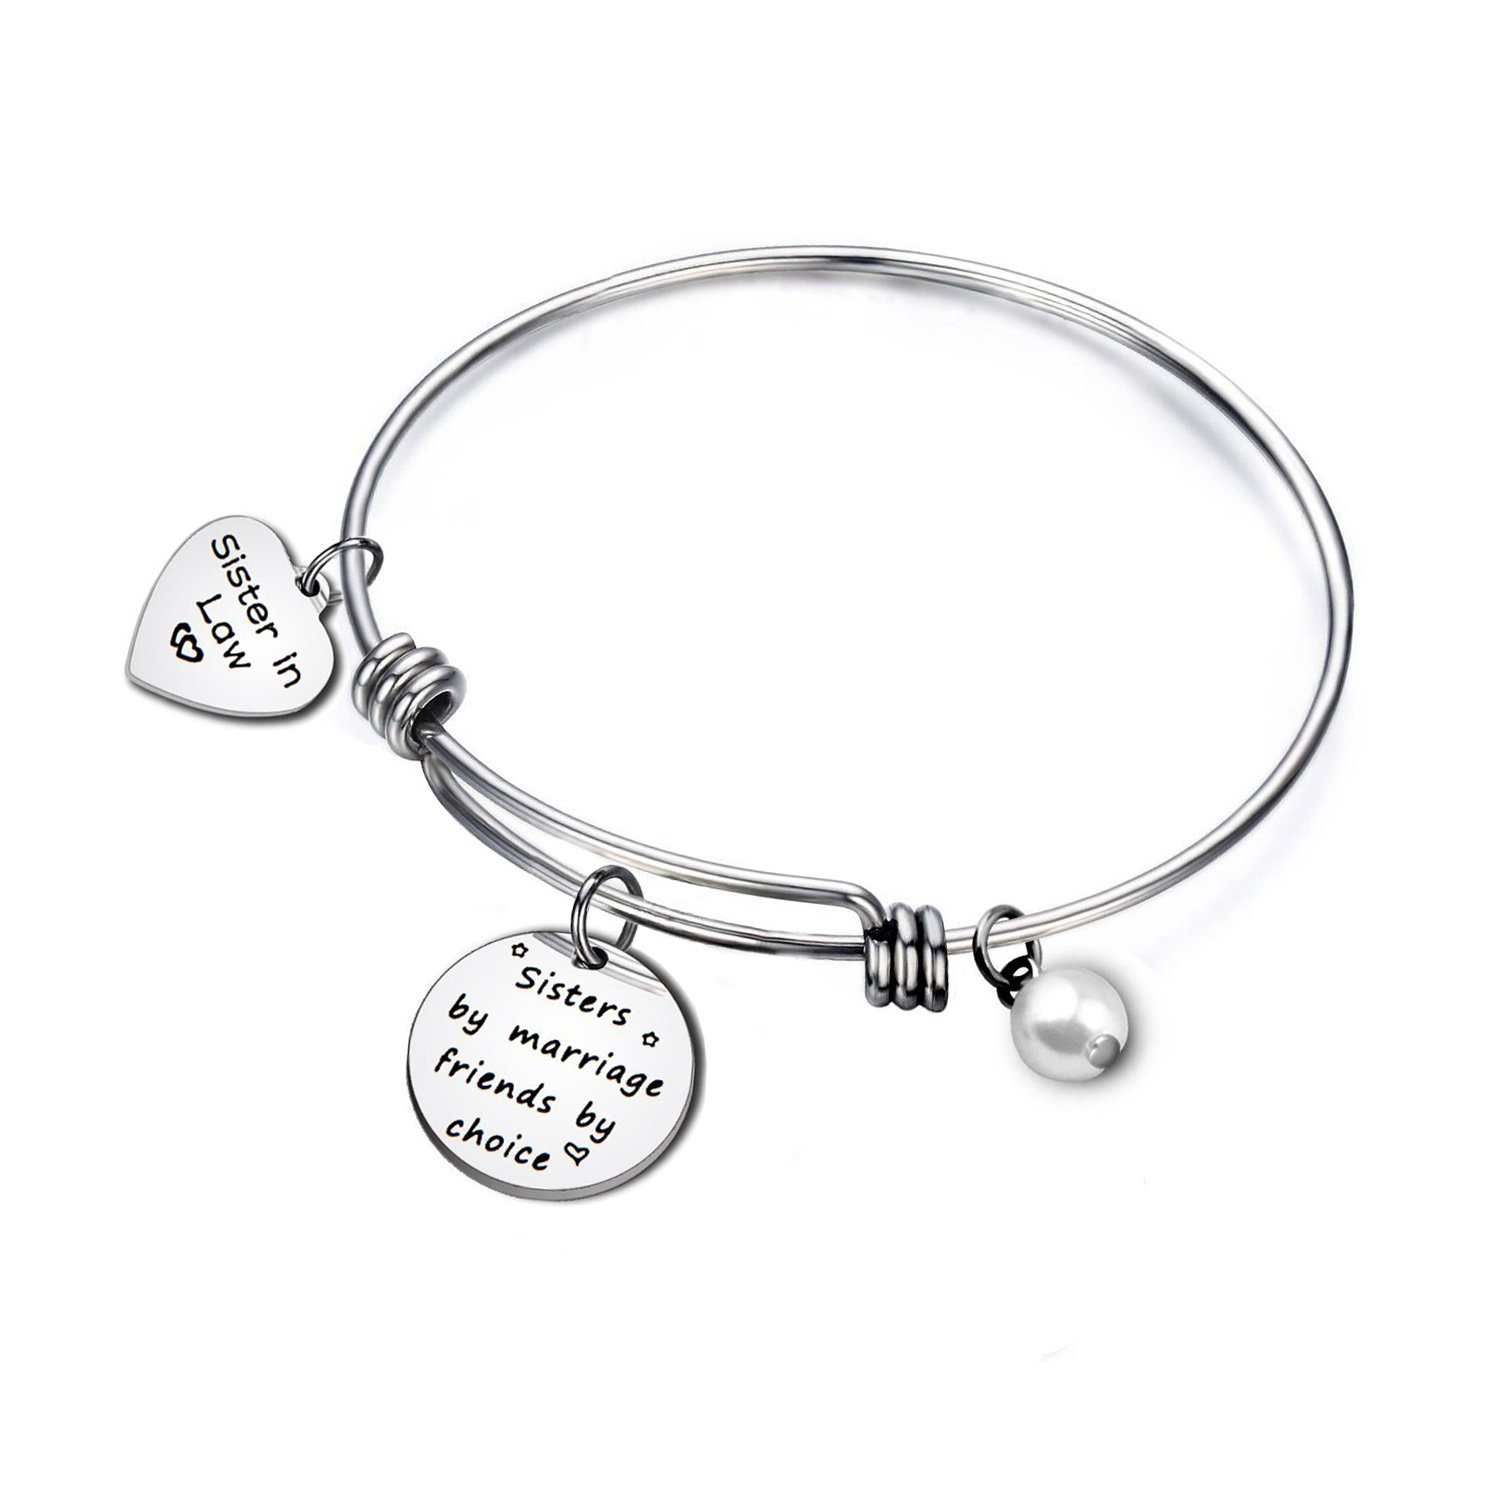 Sister in Law Gift Sister by Marriage Friend by Choice Adjustable Bangle Bracelet KUIYAI 9th-sisterinlaw